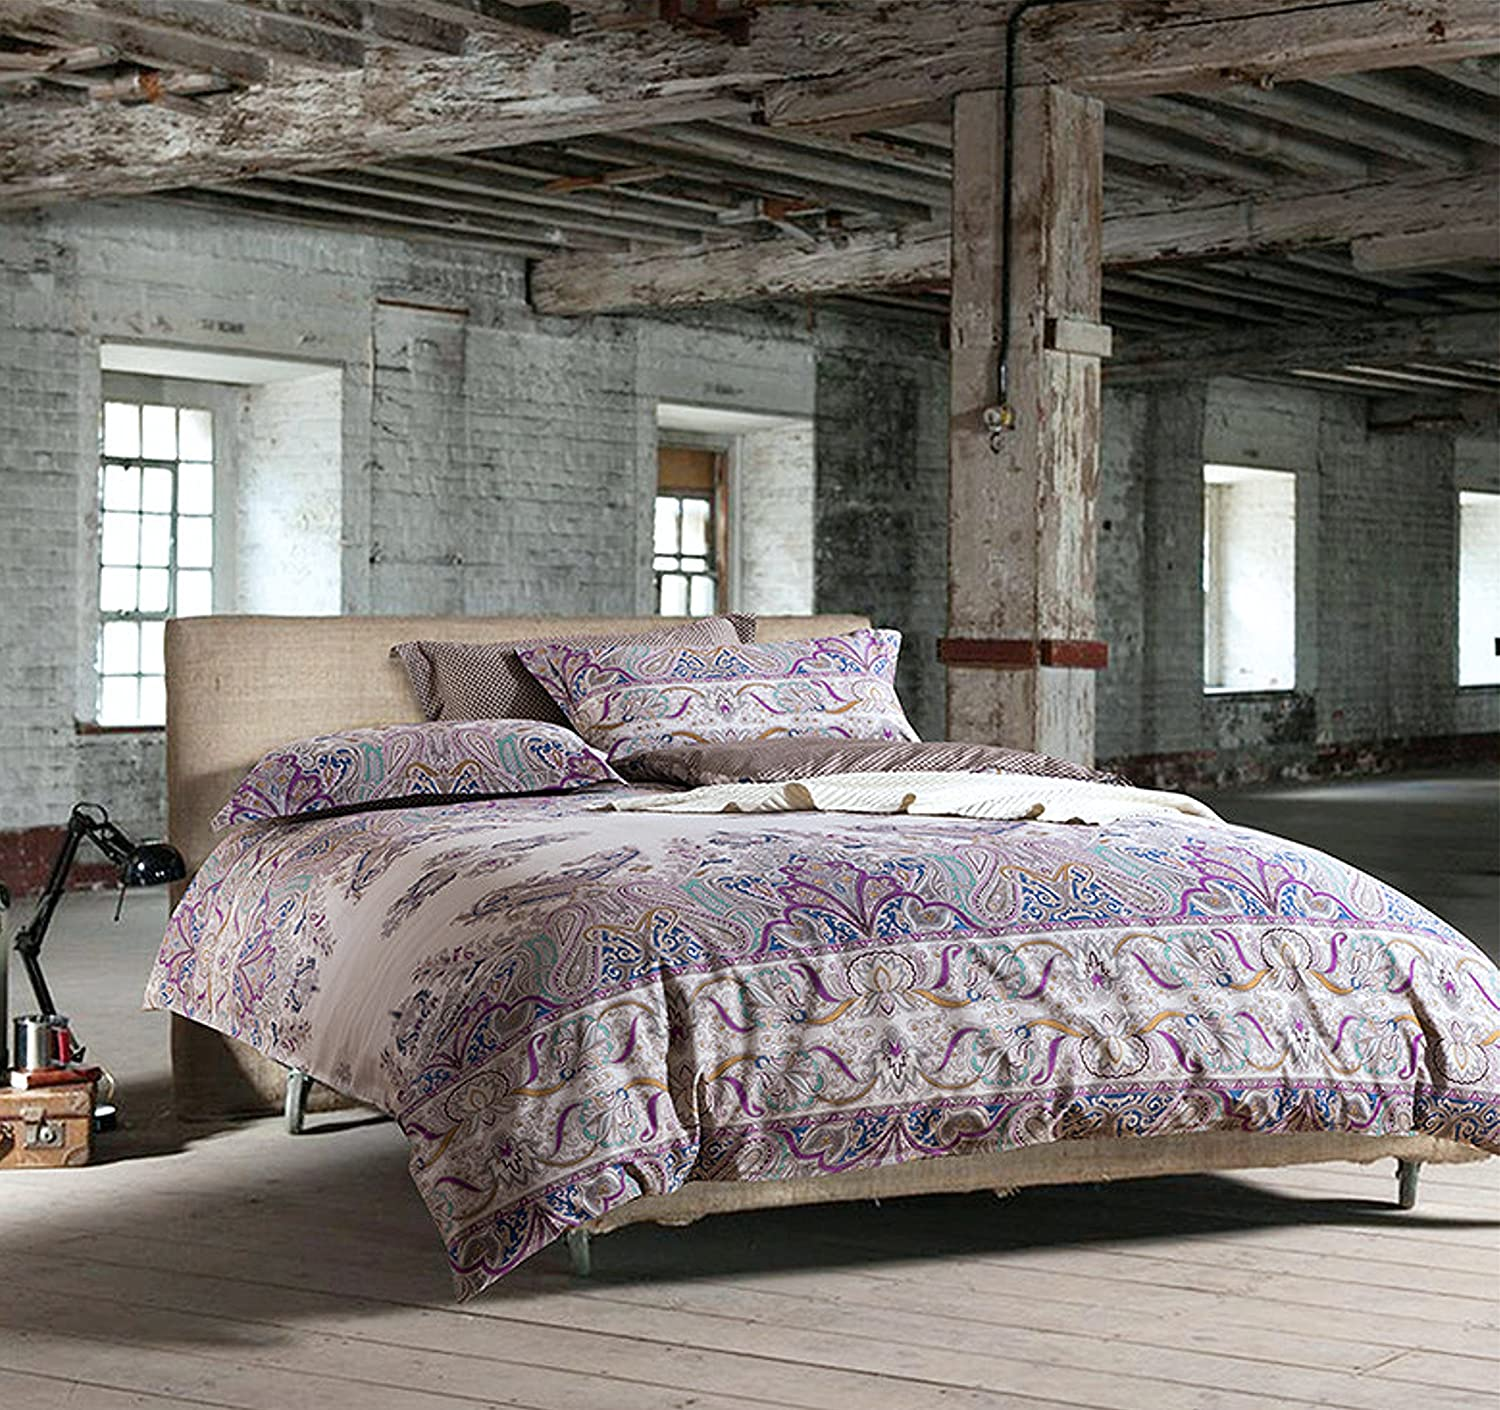 Bohemian Paisley Duvet Quilt Cover Light Purple Boho Chic 100-percent Cotton Bedding Set